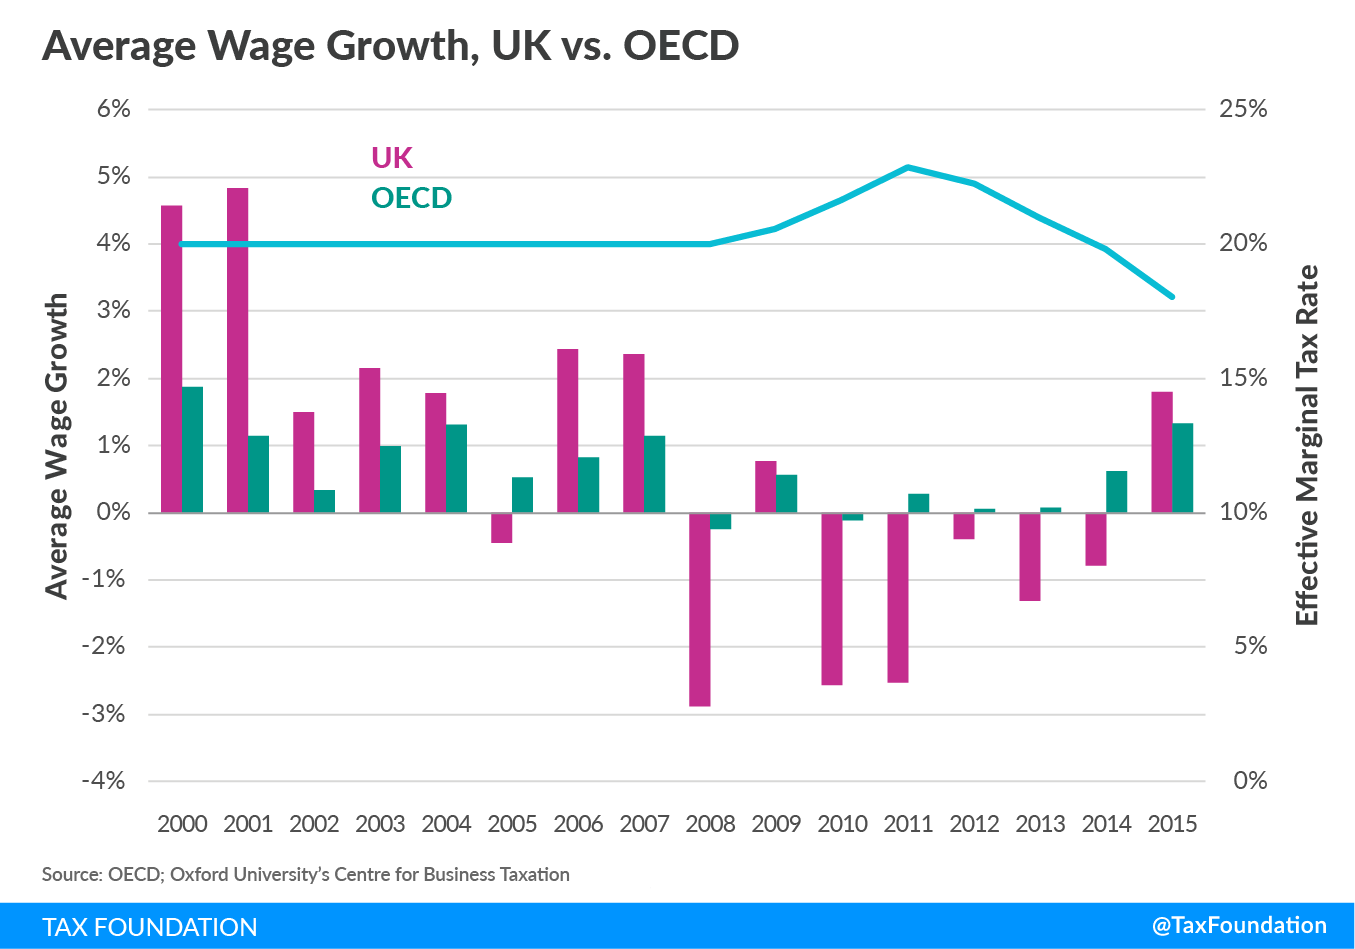 Effective Marginal Tax Rates - UK vs. OECD